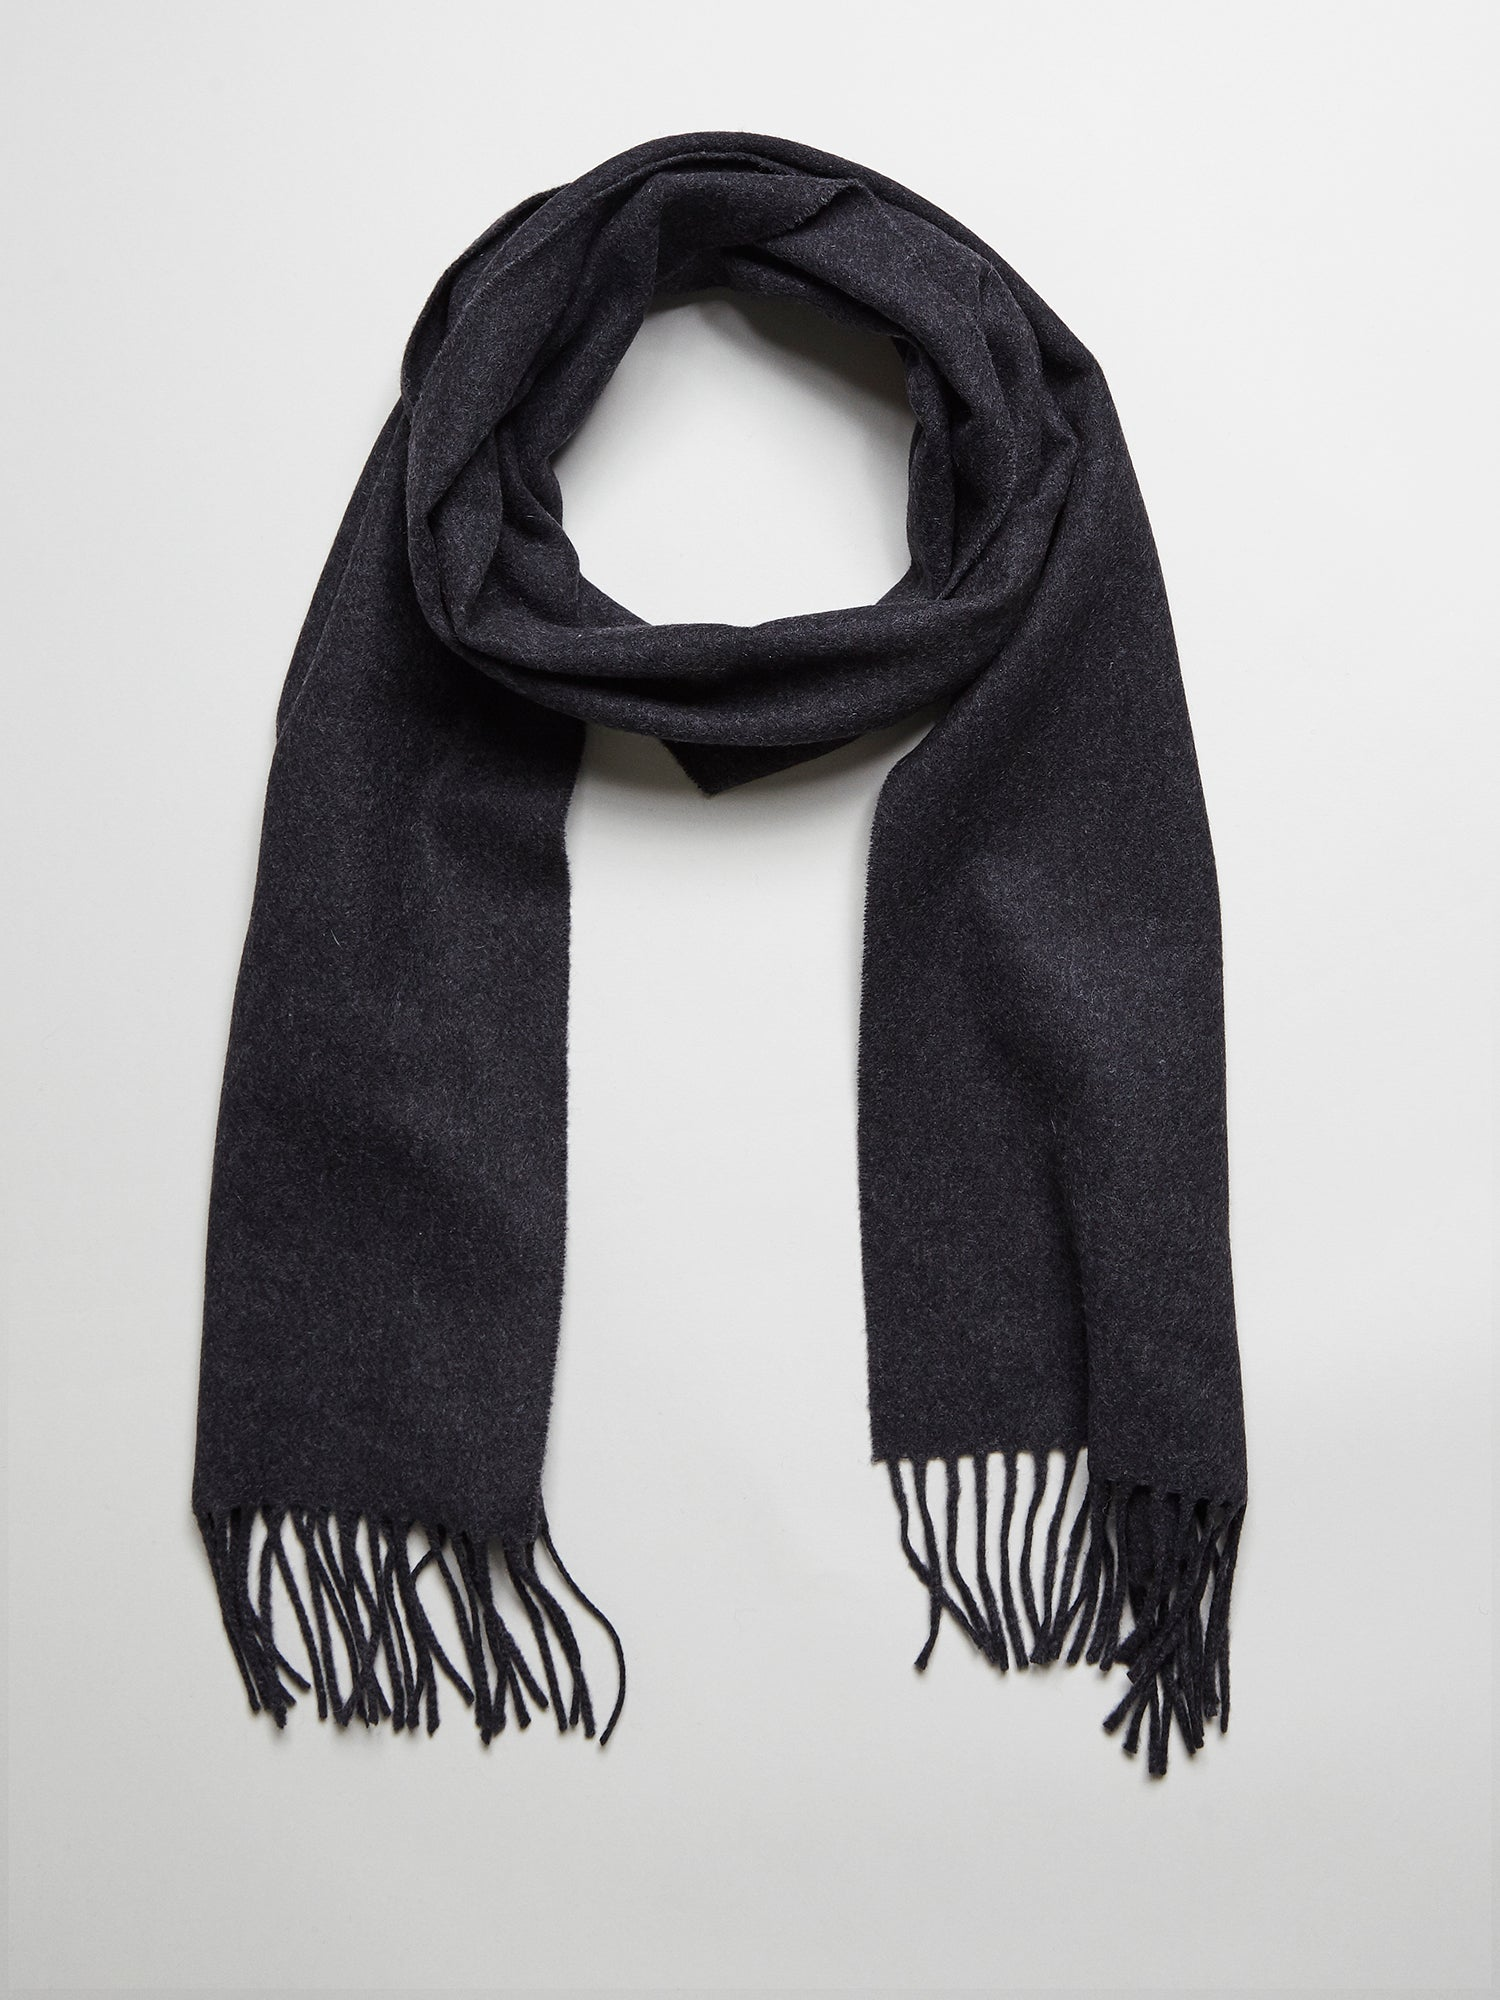 Wool Cashmere Scarf, Anthracite - Goods